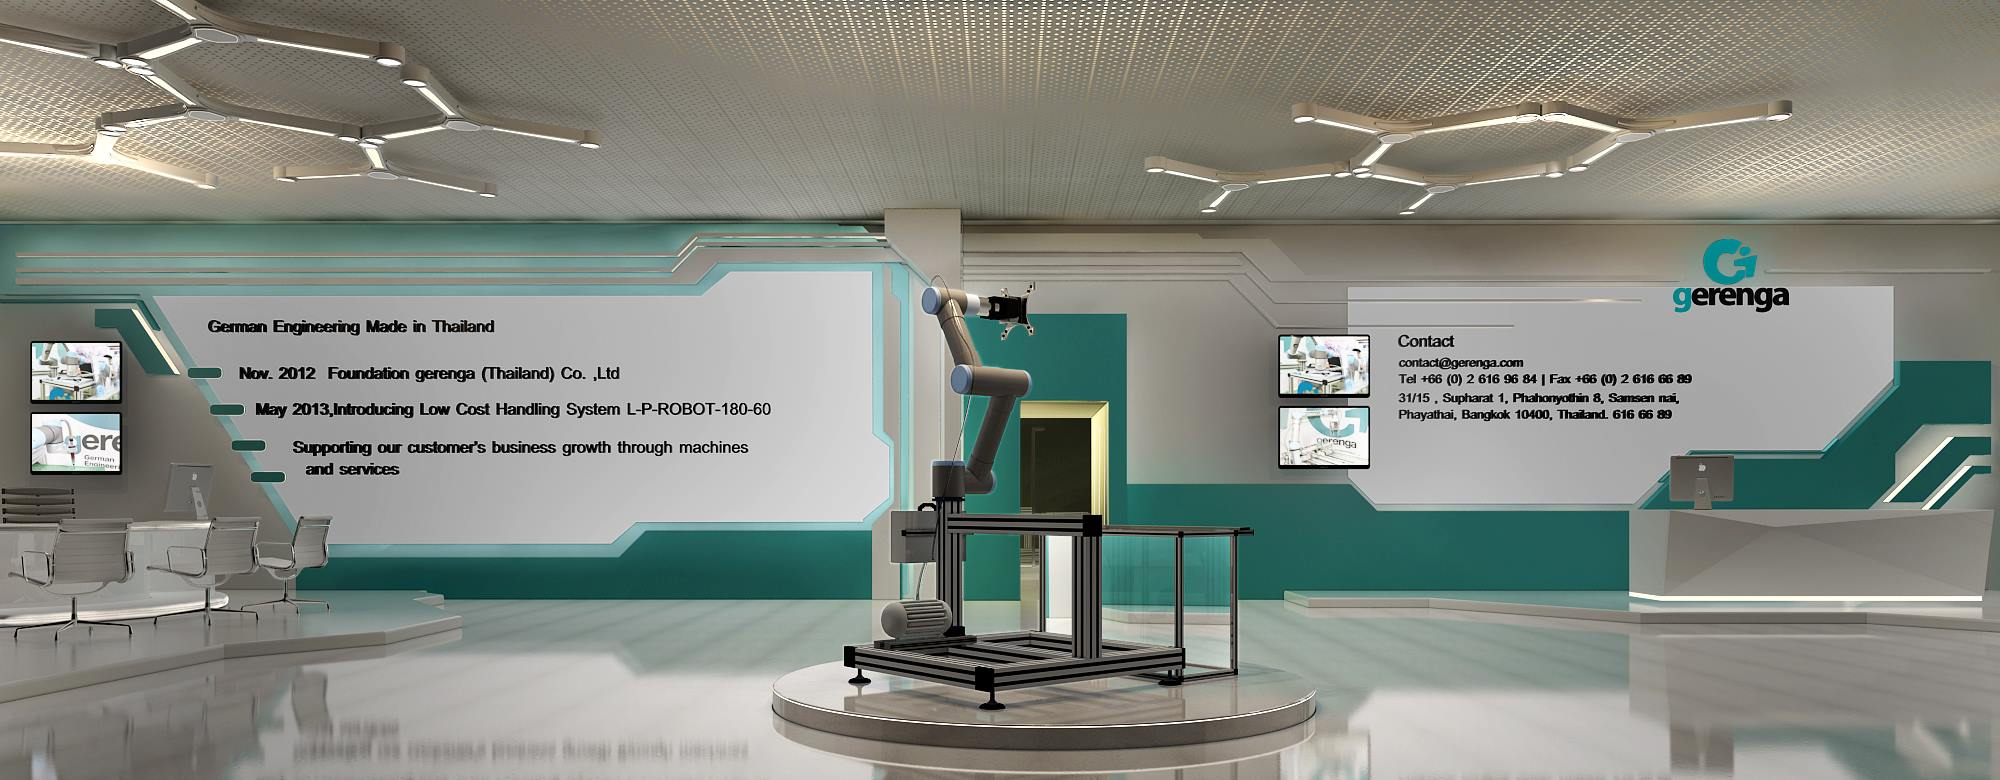 Futuristic Set Design for a Robotics Company,Gerenga from Germany 3D model - Floor One,mainly recipetion area